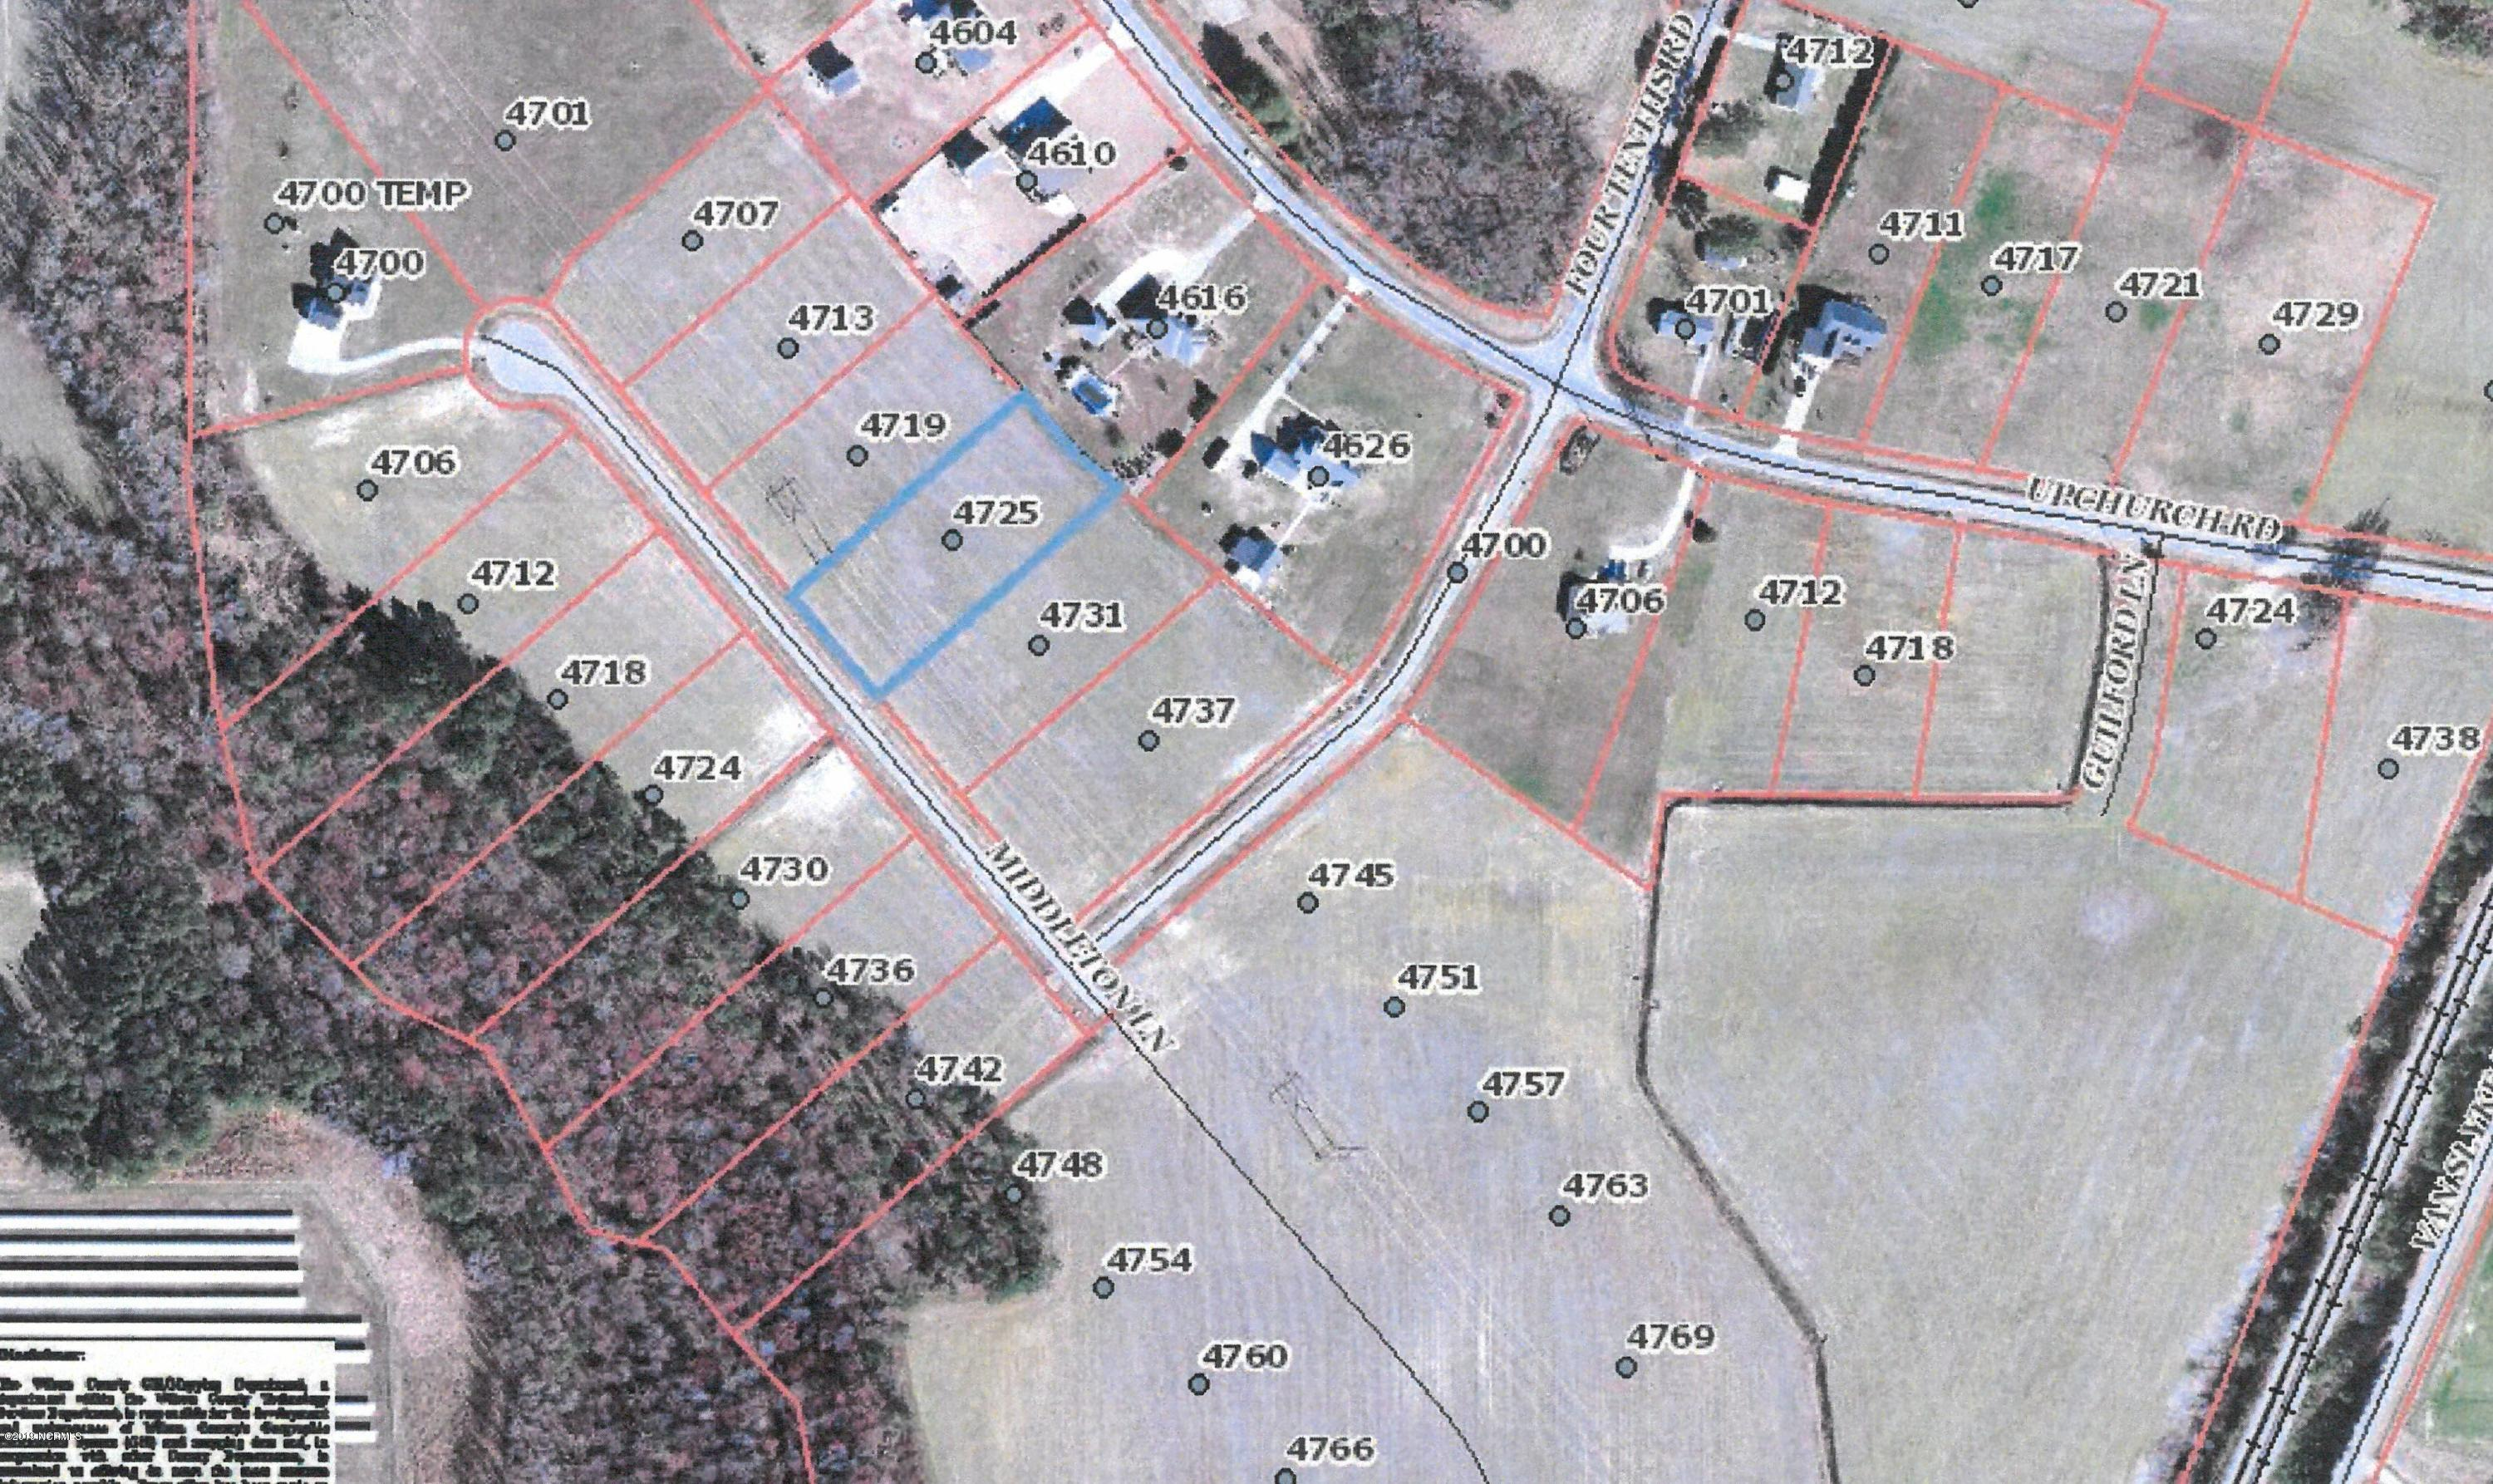 4712 Upchurch Road, Elm City, North Carolina 27822, ,Residential land,For sale,Upchurch,100196101